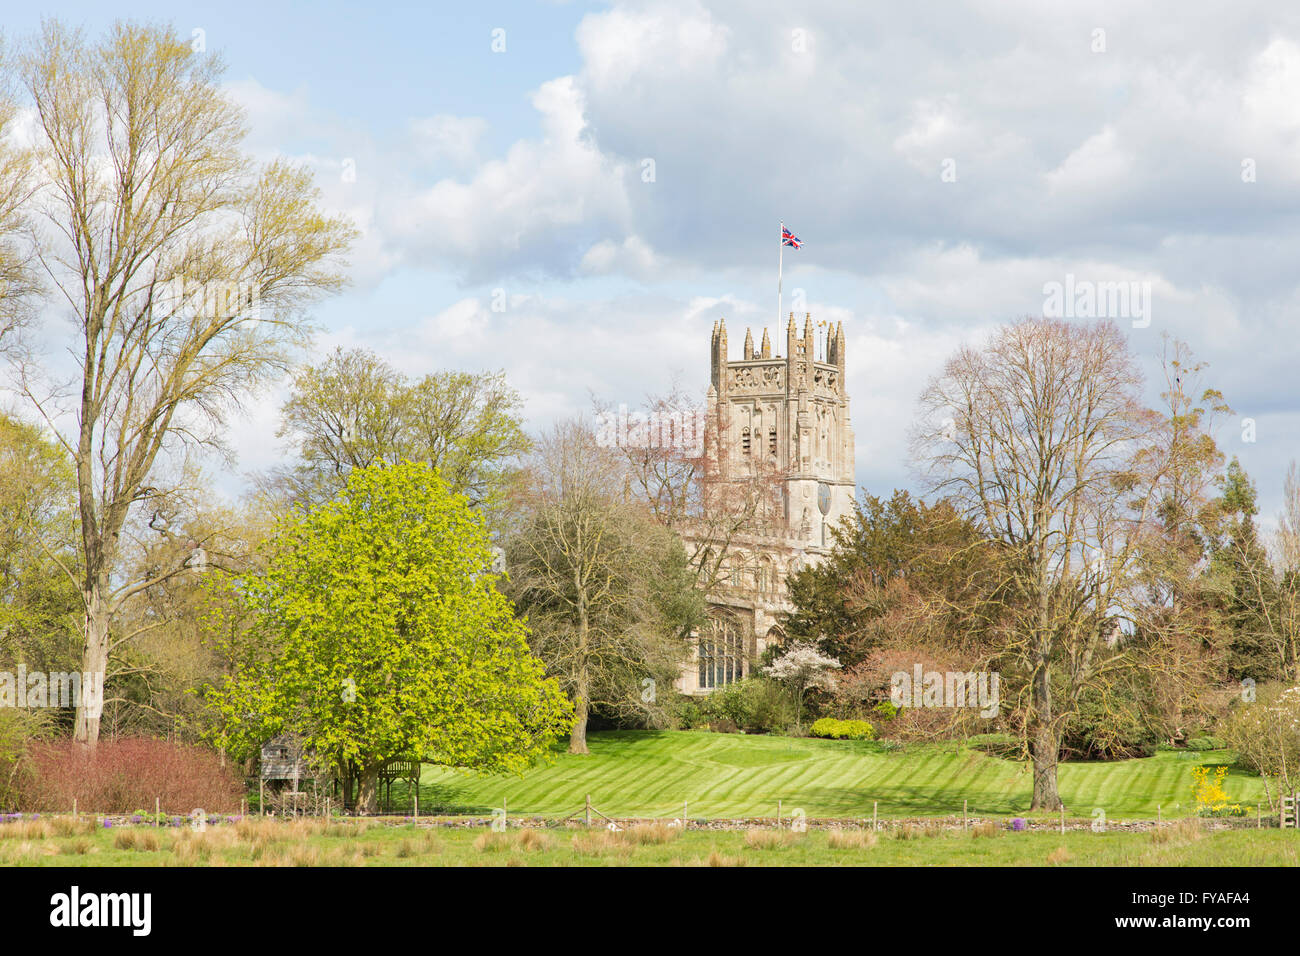 St Mary's church, Fairford, the Cotswolds, Gloucestershire, England, UK - Stock Image